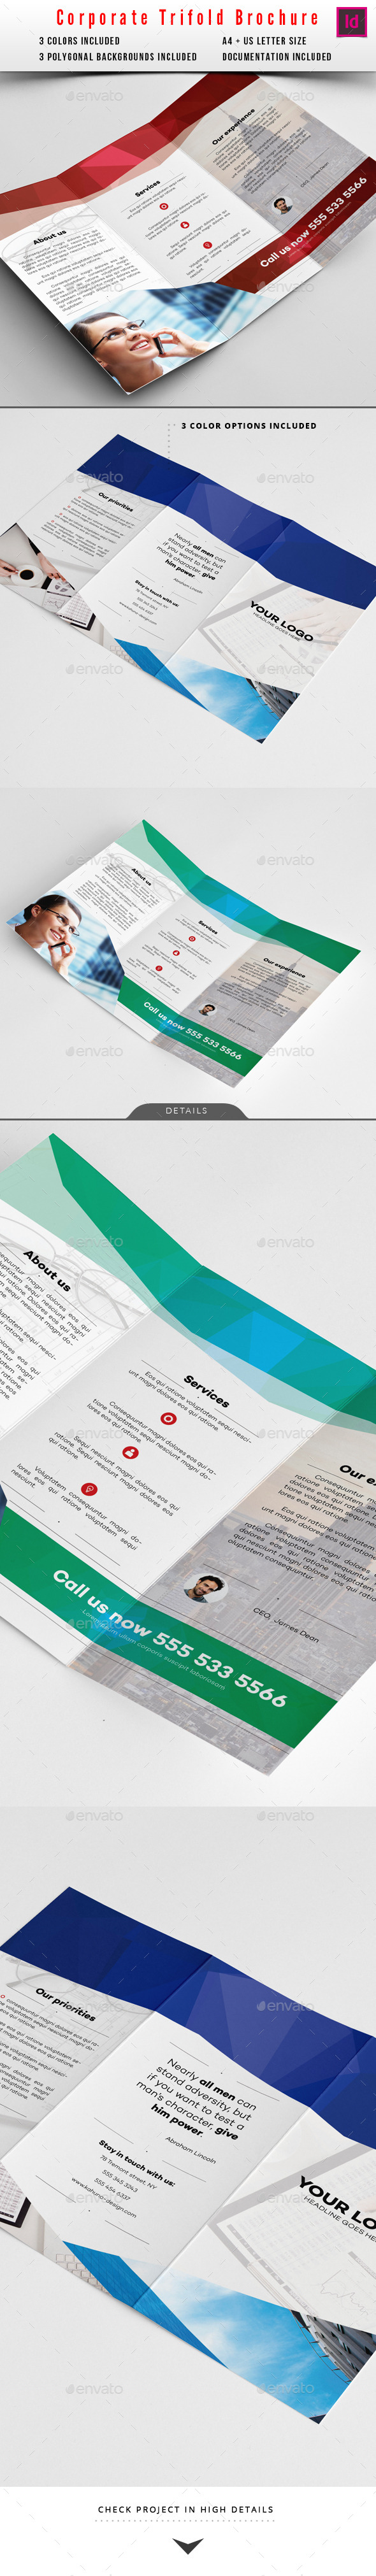 GraphicRiver Corporate Trifold Brochure 10124544